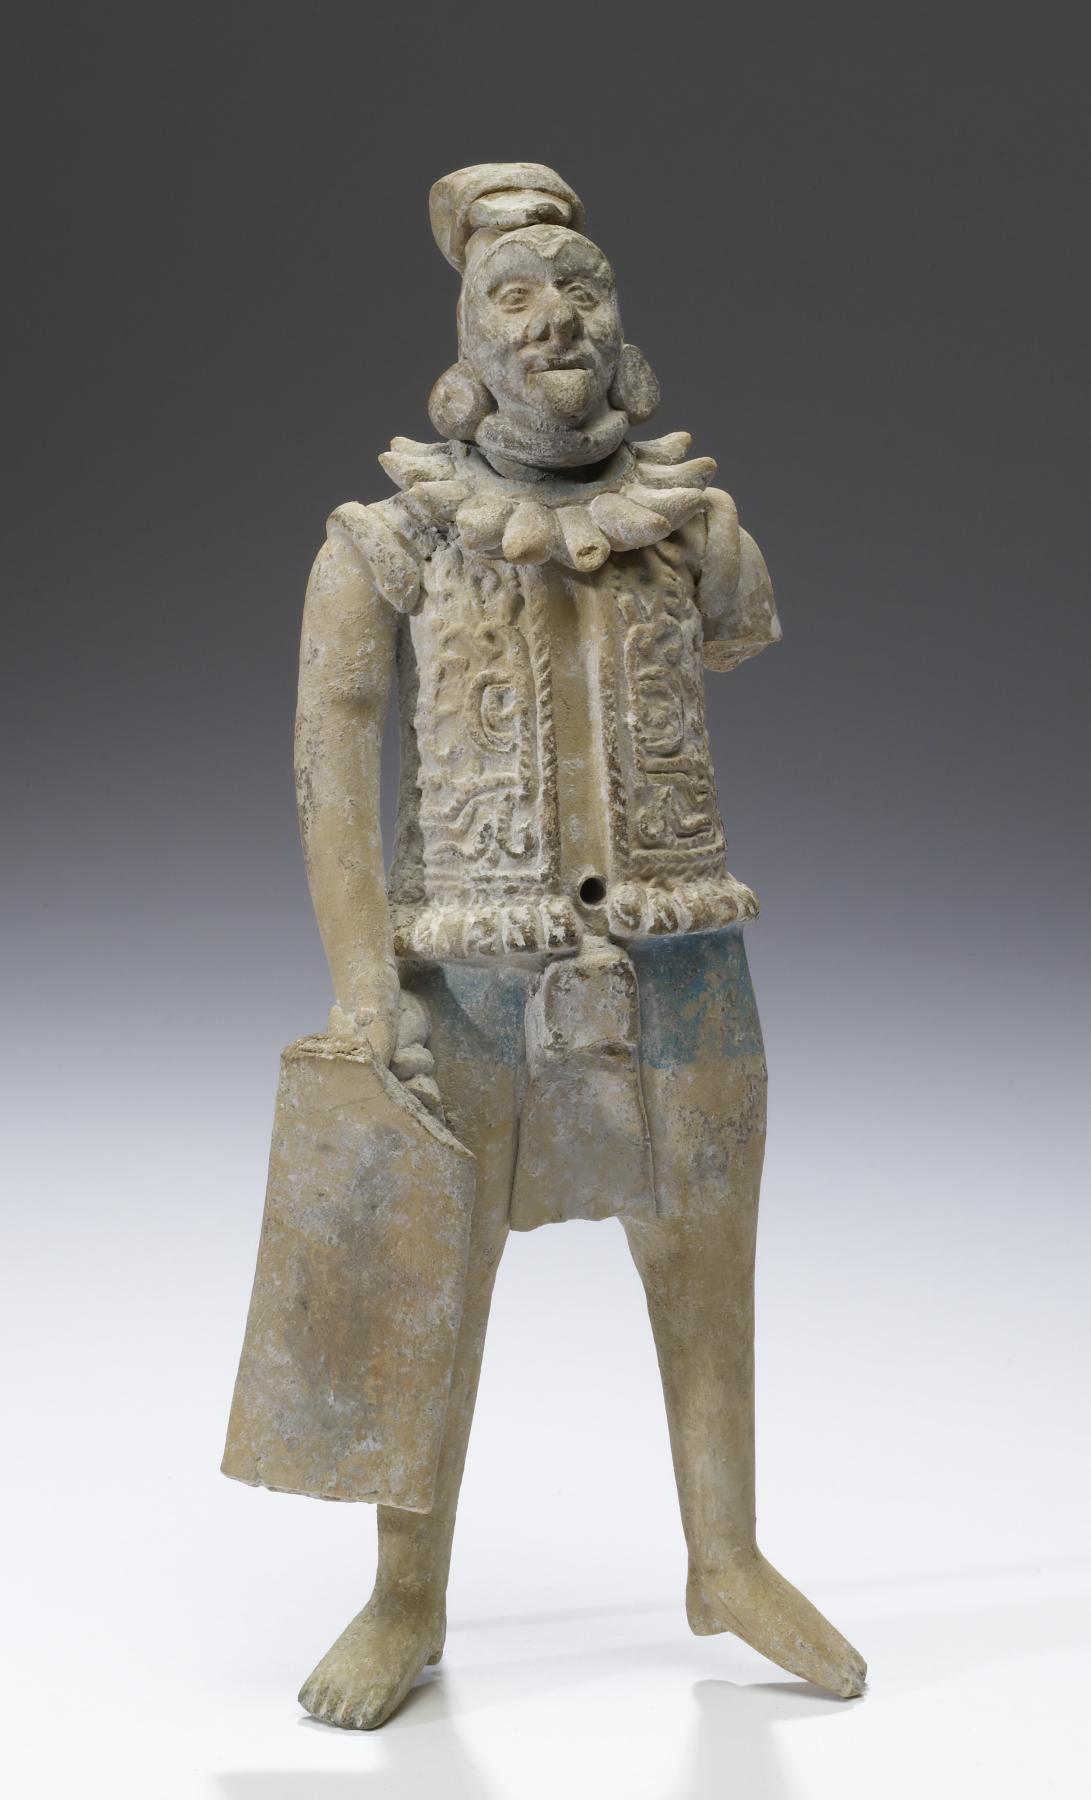 ancientart:  Mayan Warrior Figurine, AD 550-850 (Late Classic), made of earthenware, post-fire paint.  Among the most renowned of the myriad figurine traditions of Mesoamerica is that of Jaina Island, a residential and funerary settlement adjacent to the coast of west-central Campeche. Jaina Island's extensive burial grounds have been known since the nineteenth century, but only in the 1940s were they first scientifically excavated. Archaeologists found figurines in the arms of the deceased who had been dressed in their finest clothes and wrapped in cotton burial shrouds and palm-fiber mats. The renowned Mexico archaeologist Román Piña Chan, the director of excavations at Jaina, has speculated that the figurines served to ensure the deceased's lifeways and social position in the afterlife. This figurine is notable because it portrays an elderly warrior rather than the robust young combatant so typical of Classic Maya figurines. His identity is confirmed by the flexible, rectangular shield held in his right hand and the quilted armor tunic, both being requisite garb for Maya warriors. He likely represents a captured warrior, defiant yet stately in demeanor, his defeat indicated by the thick rope binding his neck and upper arms. The form of the head suggests that the figure originally was adorned with a removable headdress which has been lost.   Courtesy & currently located at the Walters Art Museum, USA.